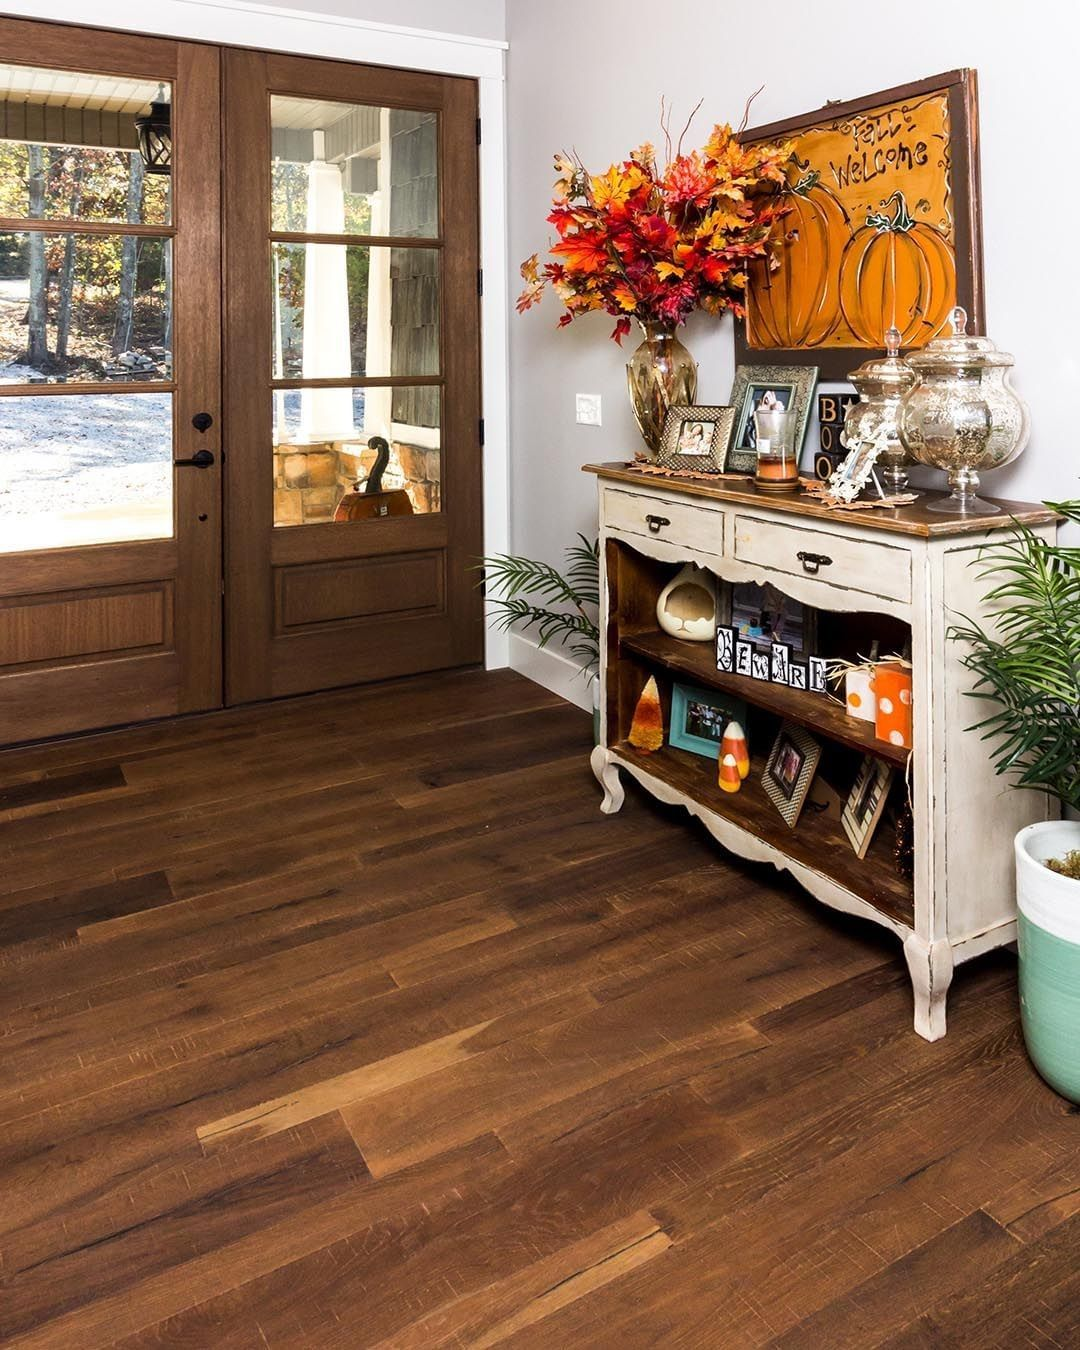 Why oak flooring is important?